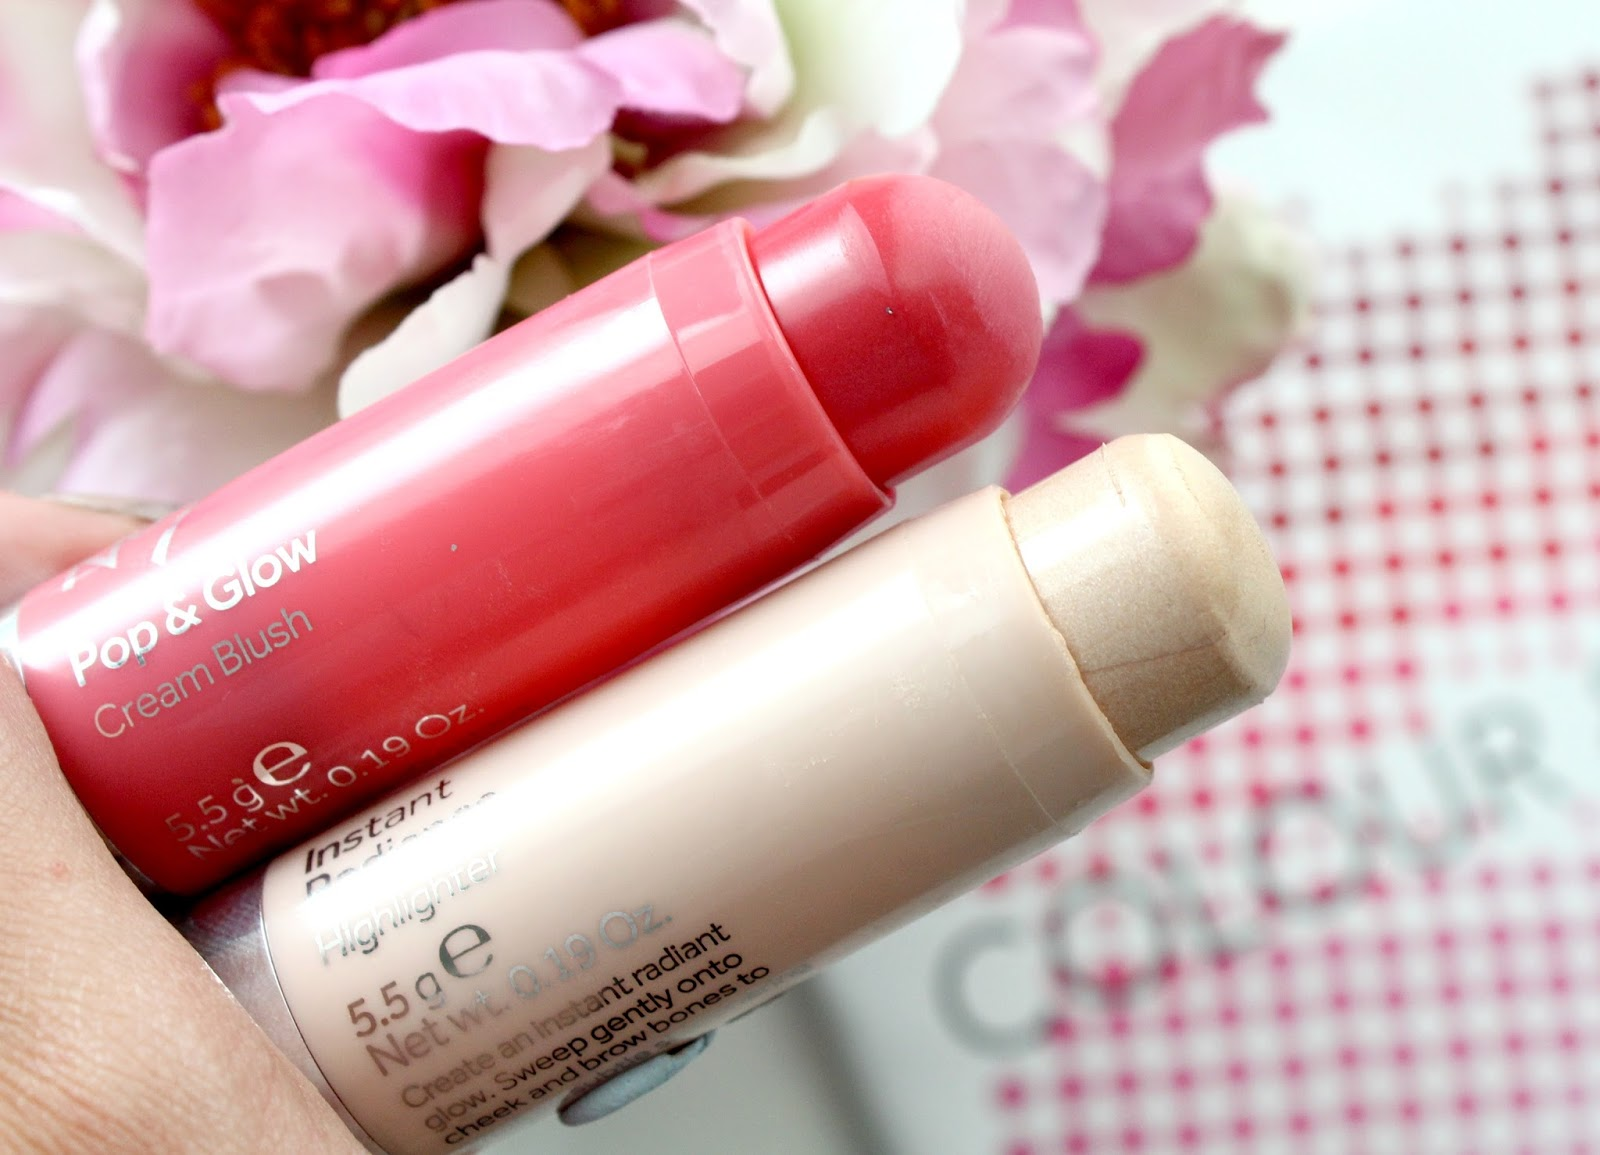 No7 Pop & Glow cream blush and Instant Radiance Highlighter Review,